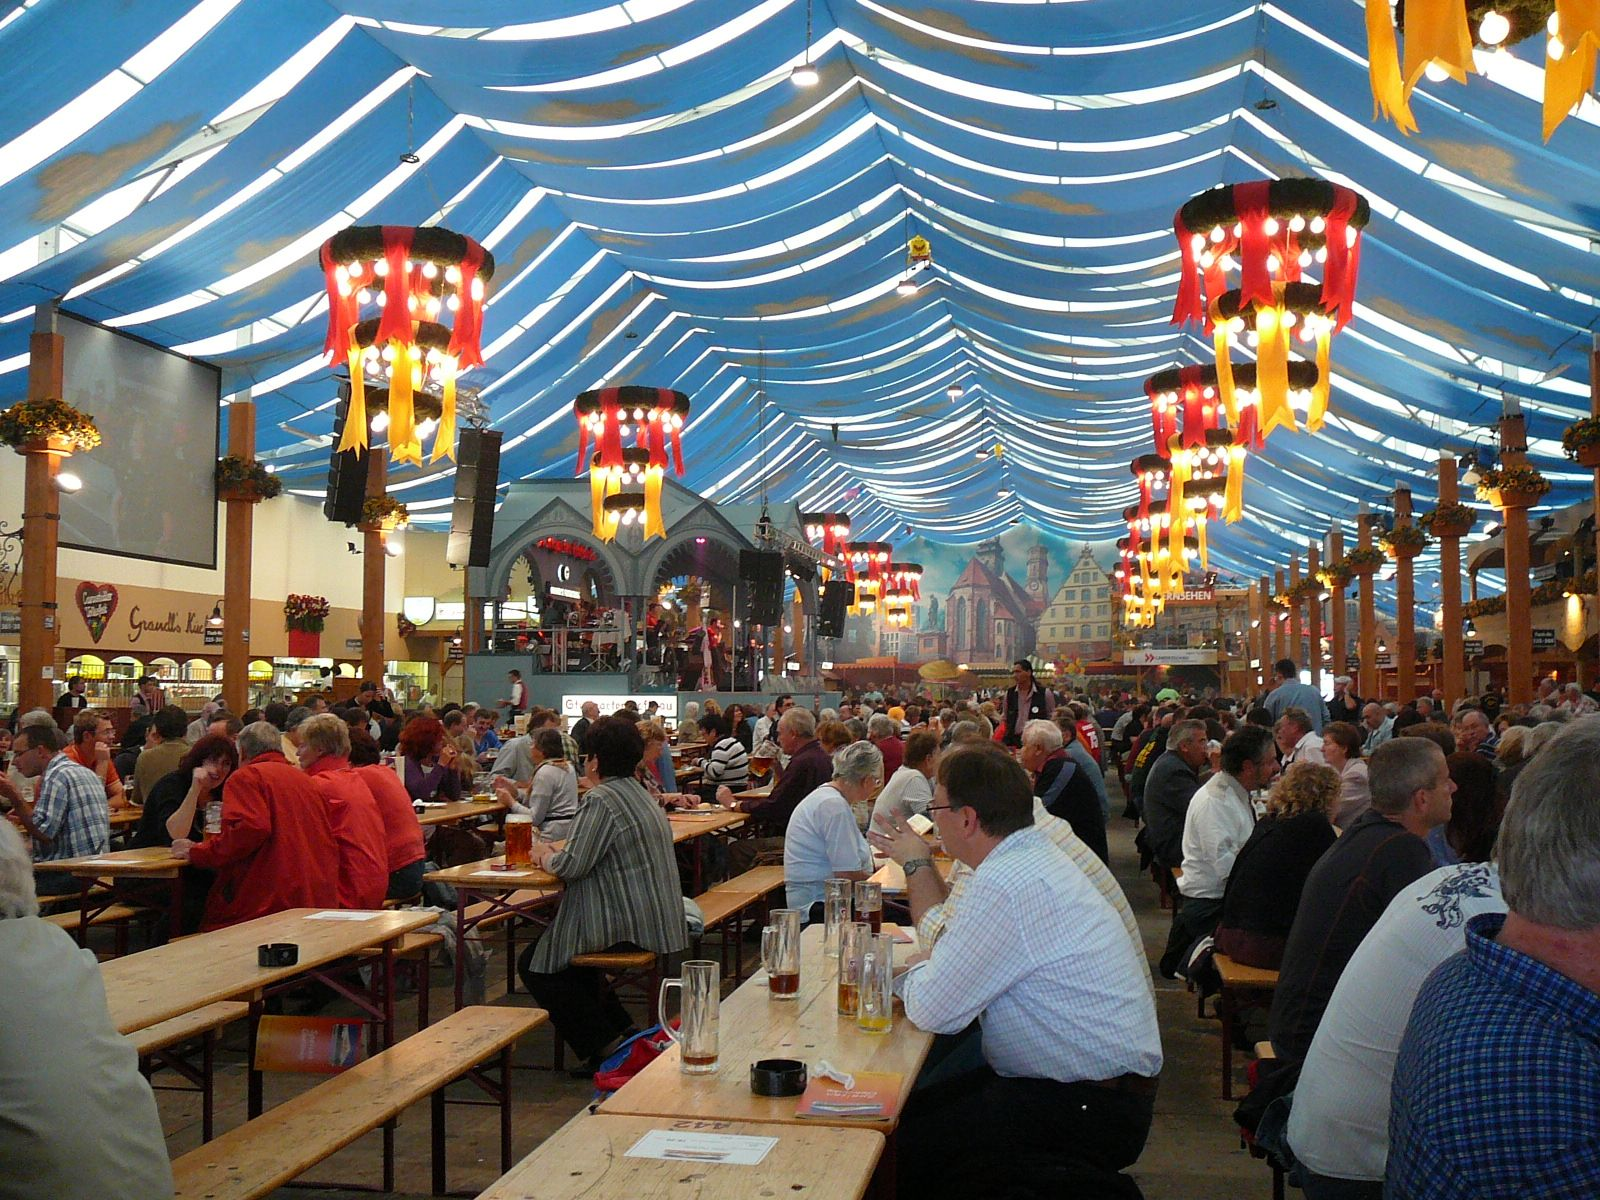 Authentic German Beer Hall Like The Communal Seating With Narrow Tables Poland Food Beer Hall Poland